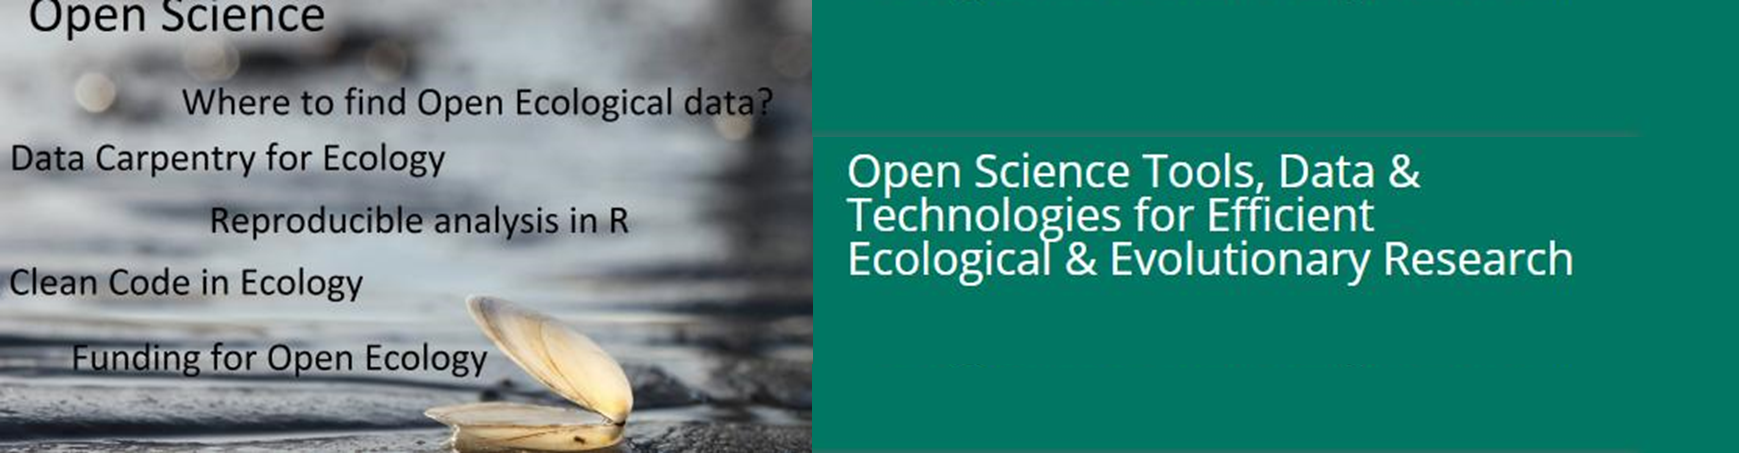 Free workshops and a mini-symposium on use of open science tools in ecological and evolutionary research for ecologists, evolutionary biologists and interested data scientists